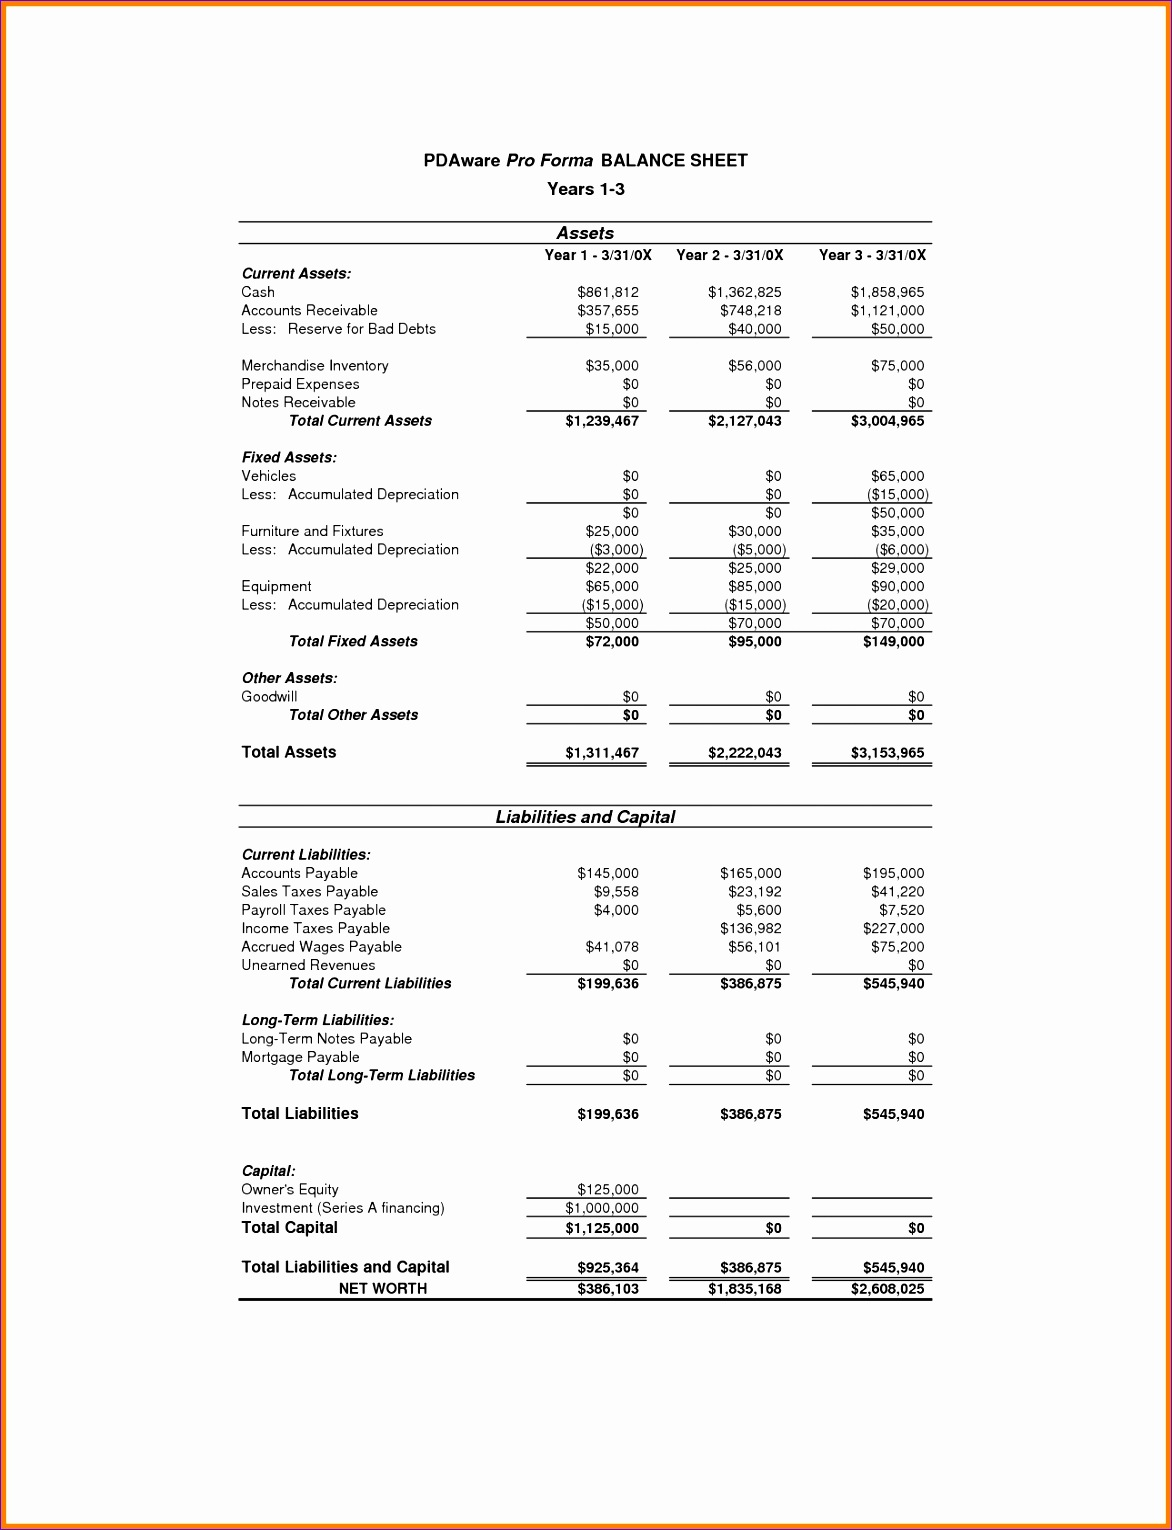 Excel Templates for Financial Statements Jcewv Elegant 11 Pro forma Financial Statements Template